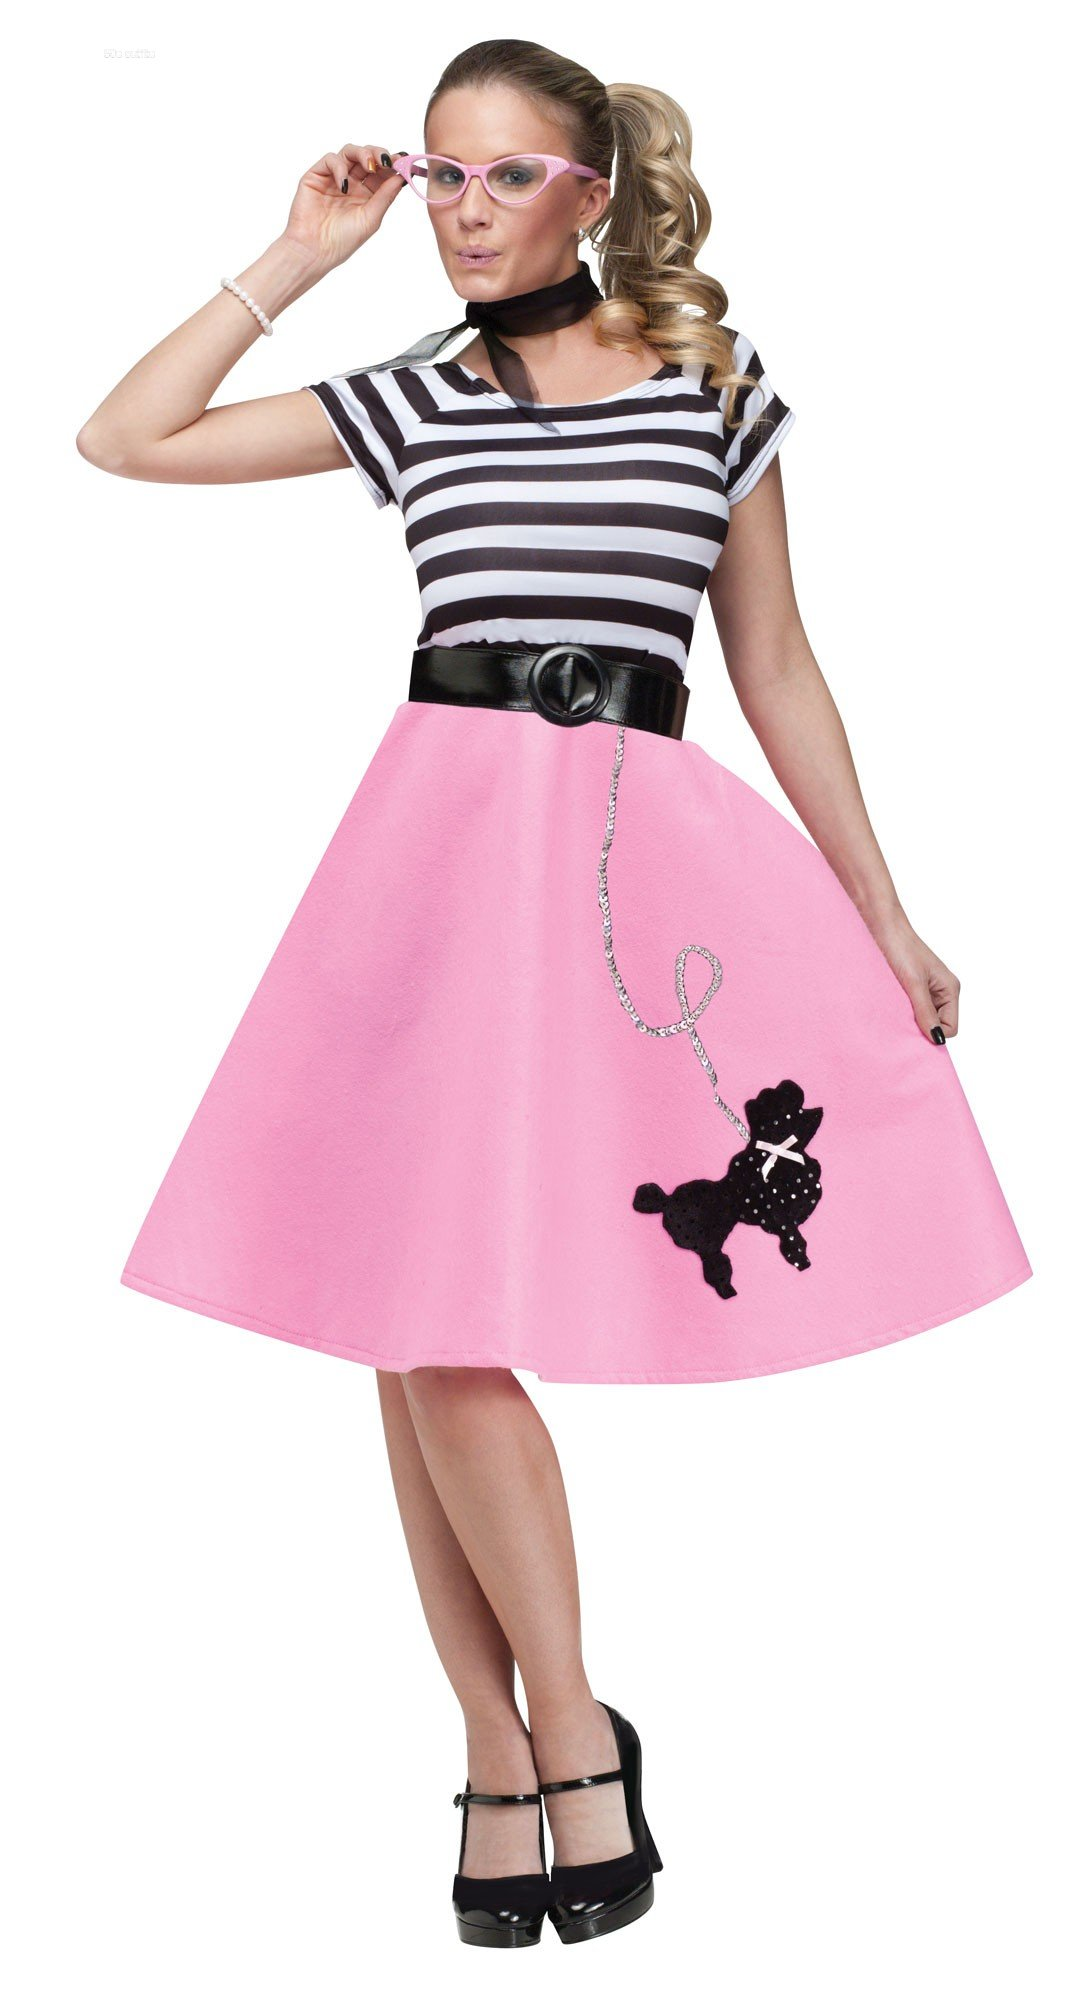 50s Attire | 1950s Poodle Skirt | 50s Men Attire